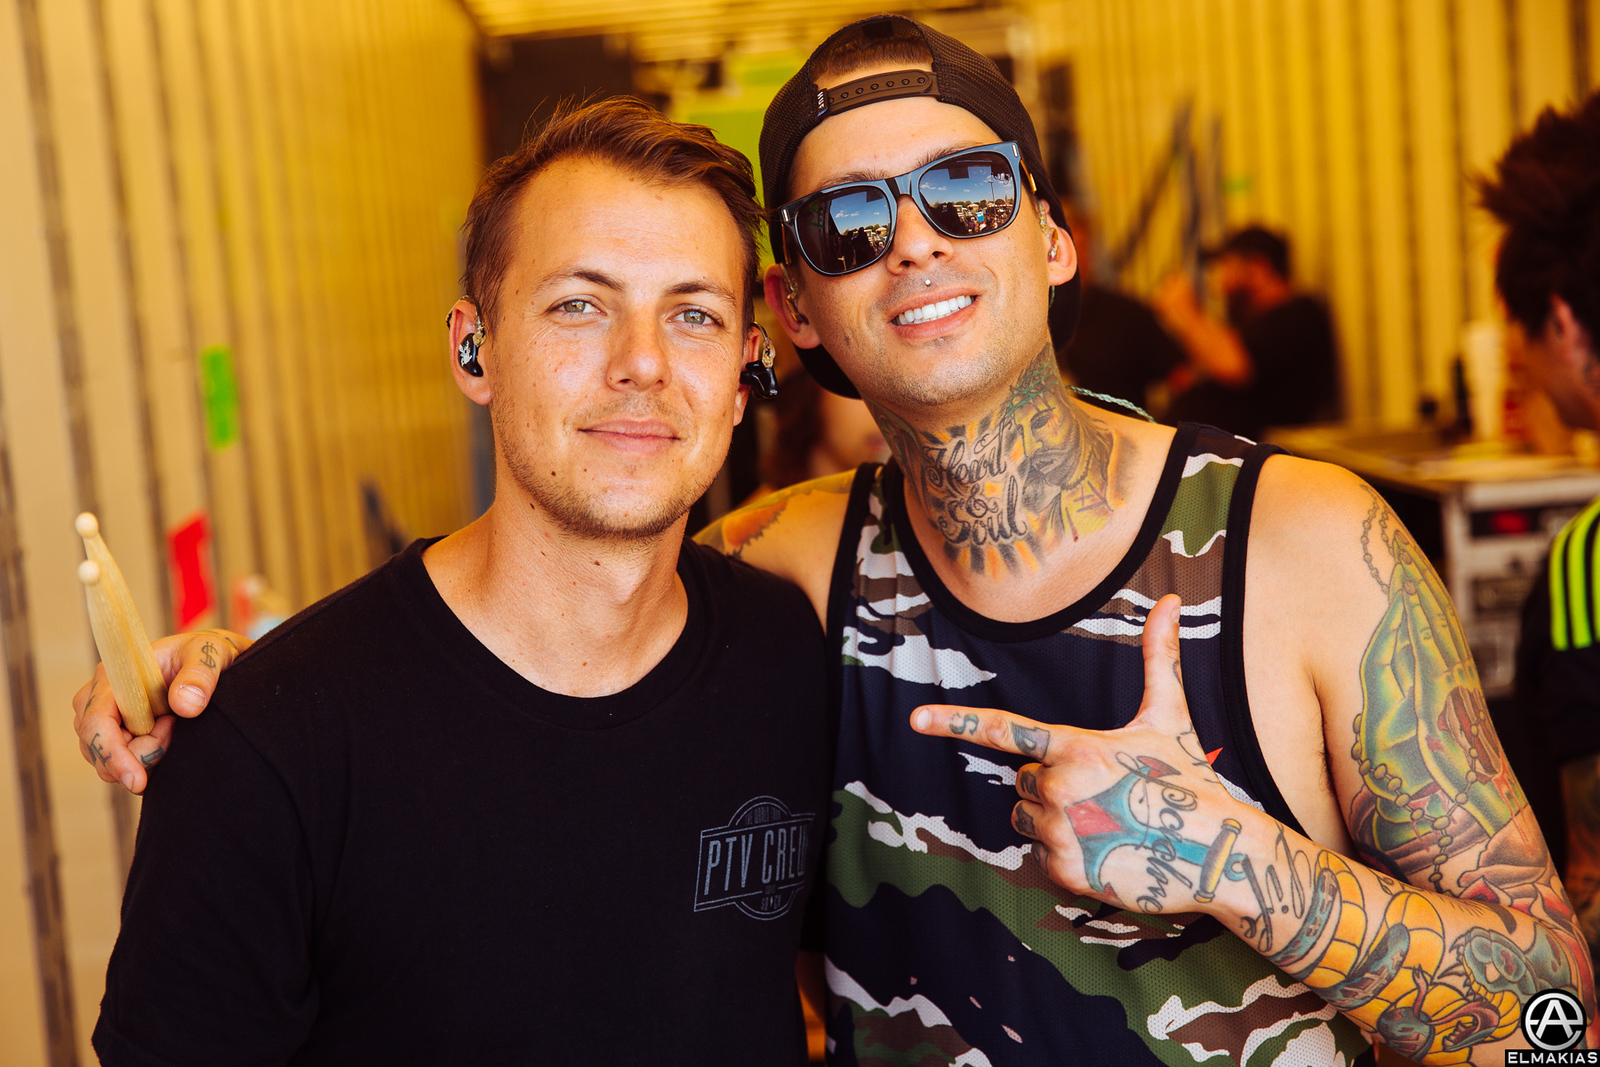 Casey and Mike Fuentes of Pierce the Veil at Warped Tour 2015 by Adam Elmakias